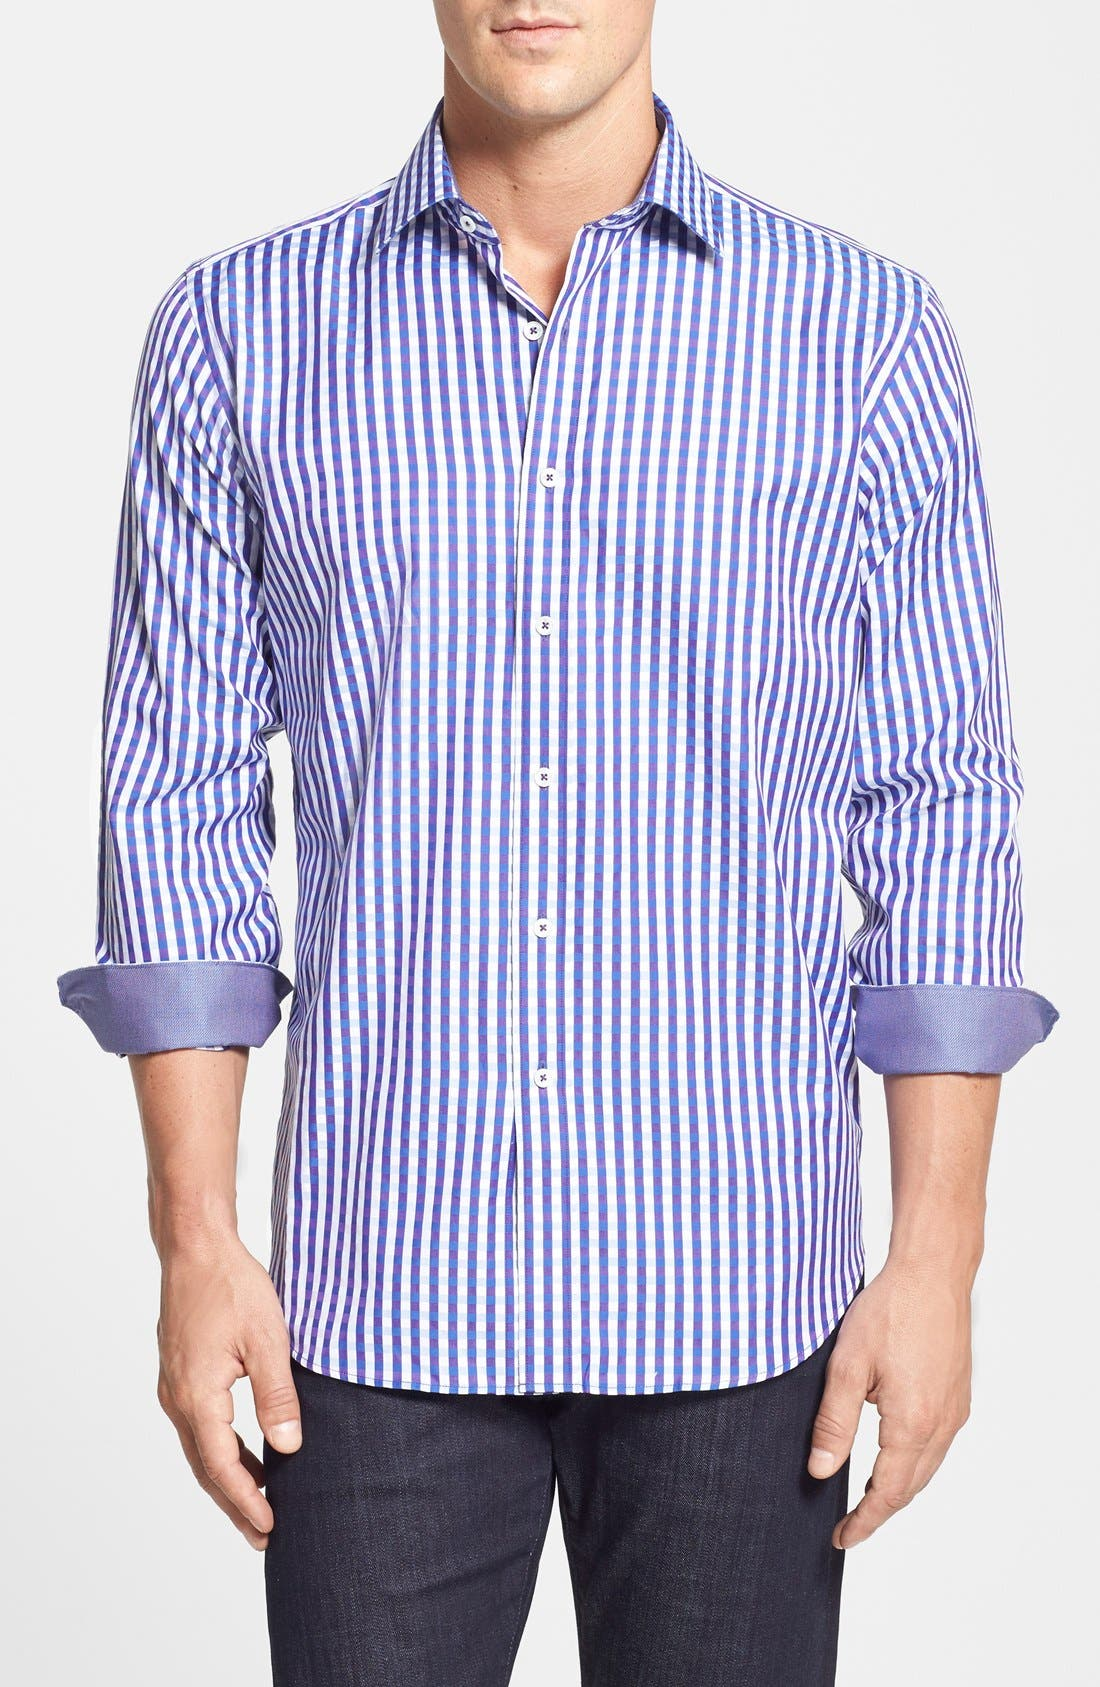 Alternate Image 1 Selected - Bugatchi Classic Fit Plaid Sport Shirt (Tall)